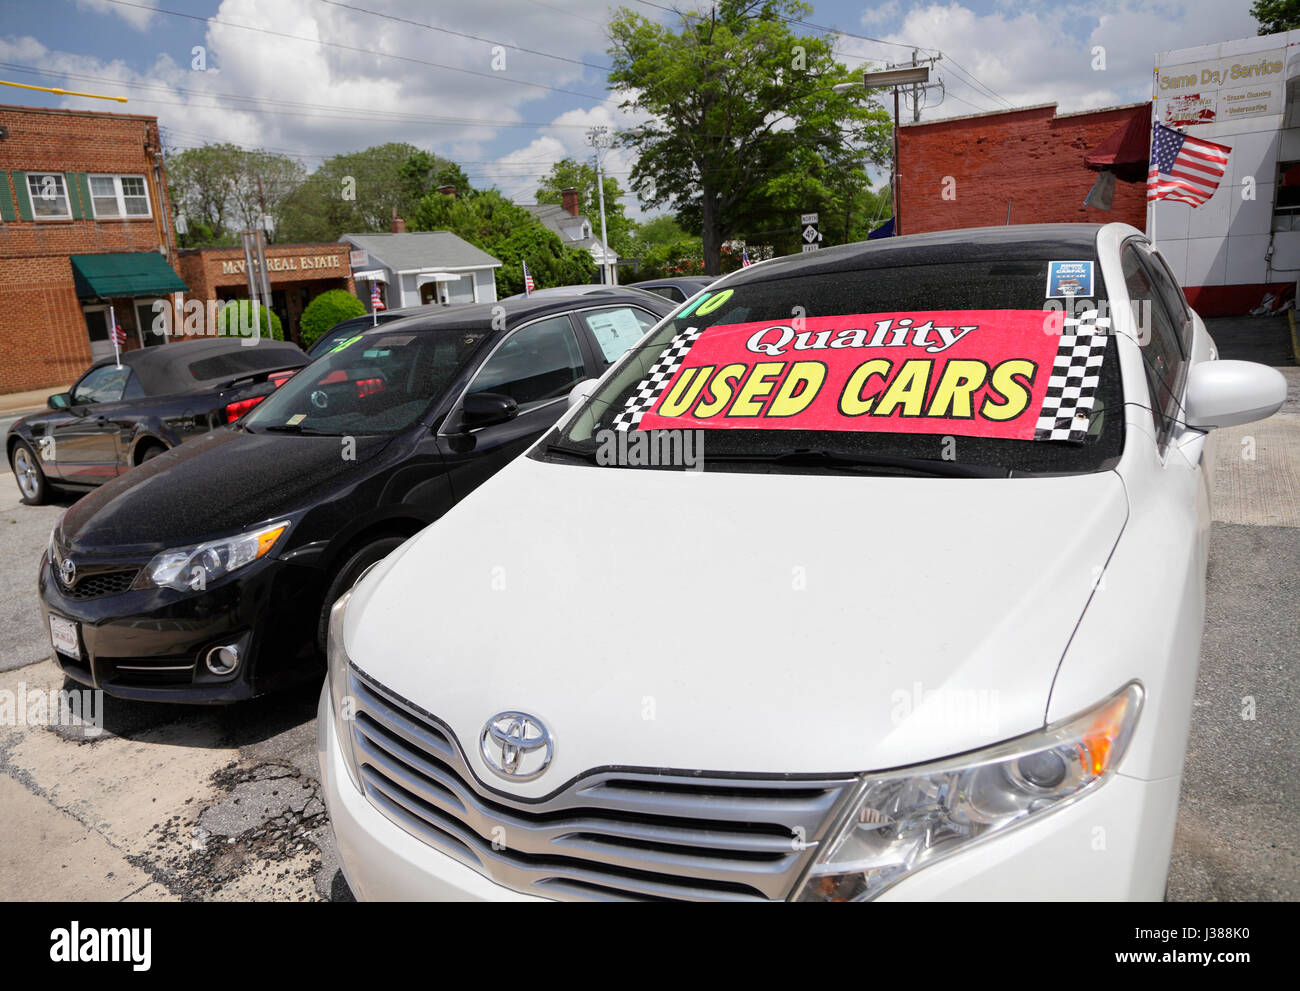 Used cars for sale, North Carolina, USA Stock Photo: 139709332 - Alamy